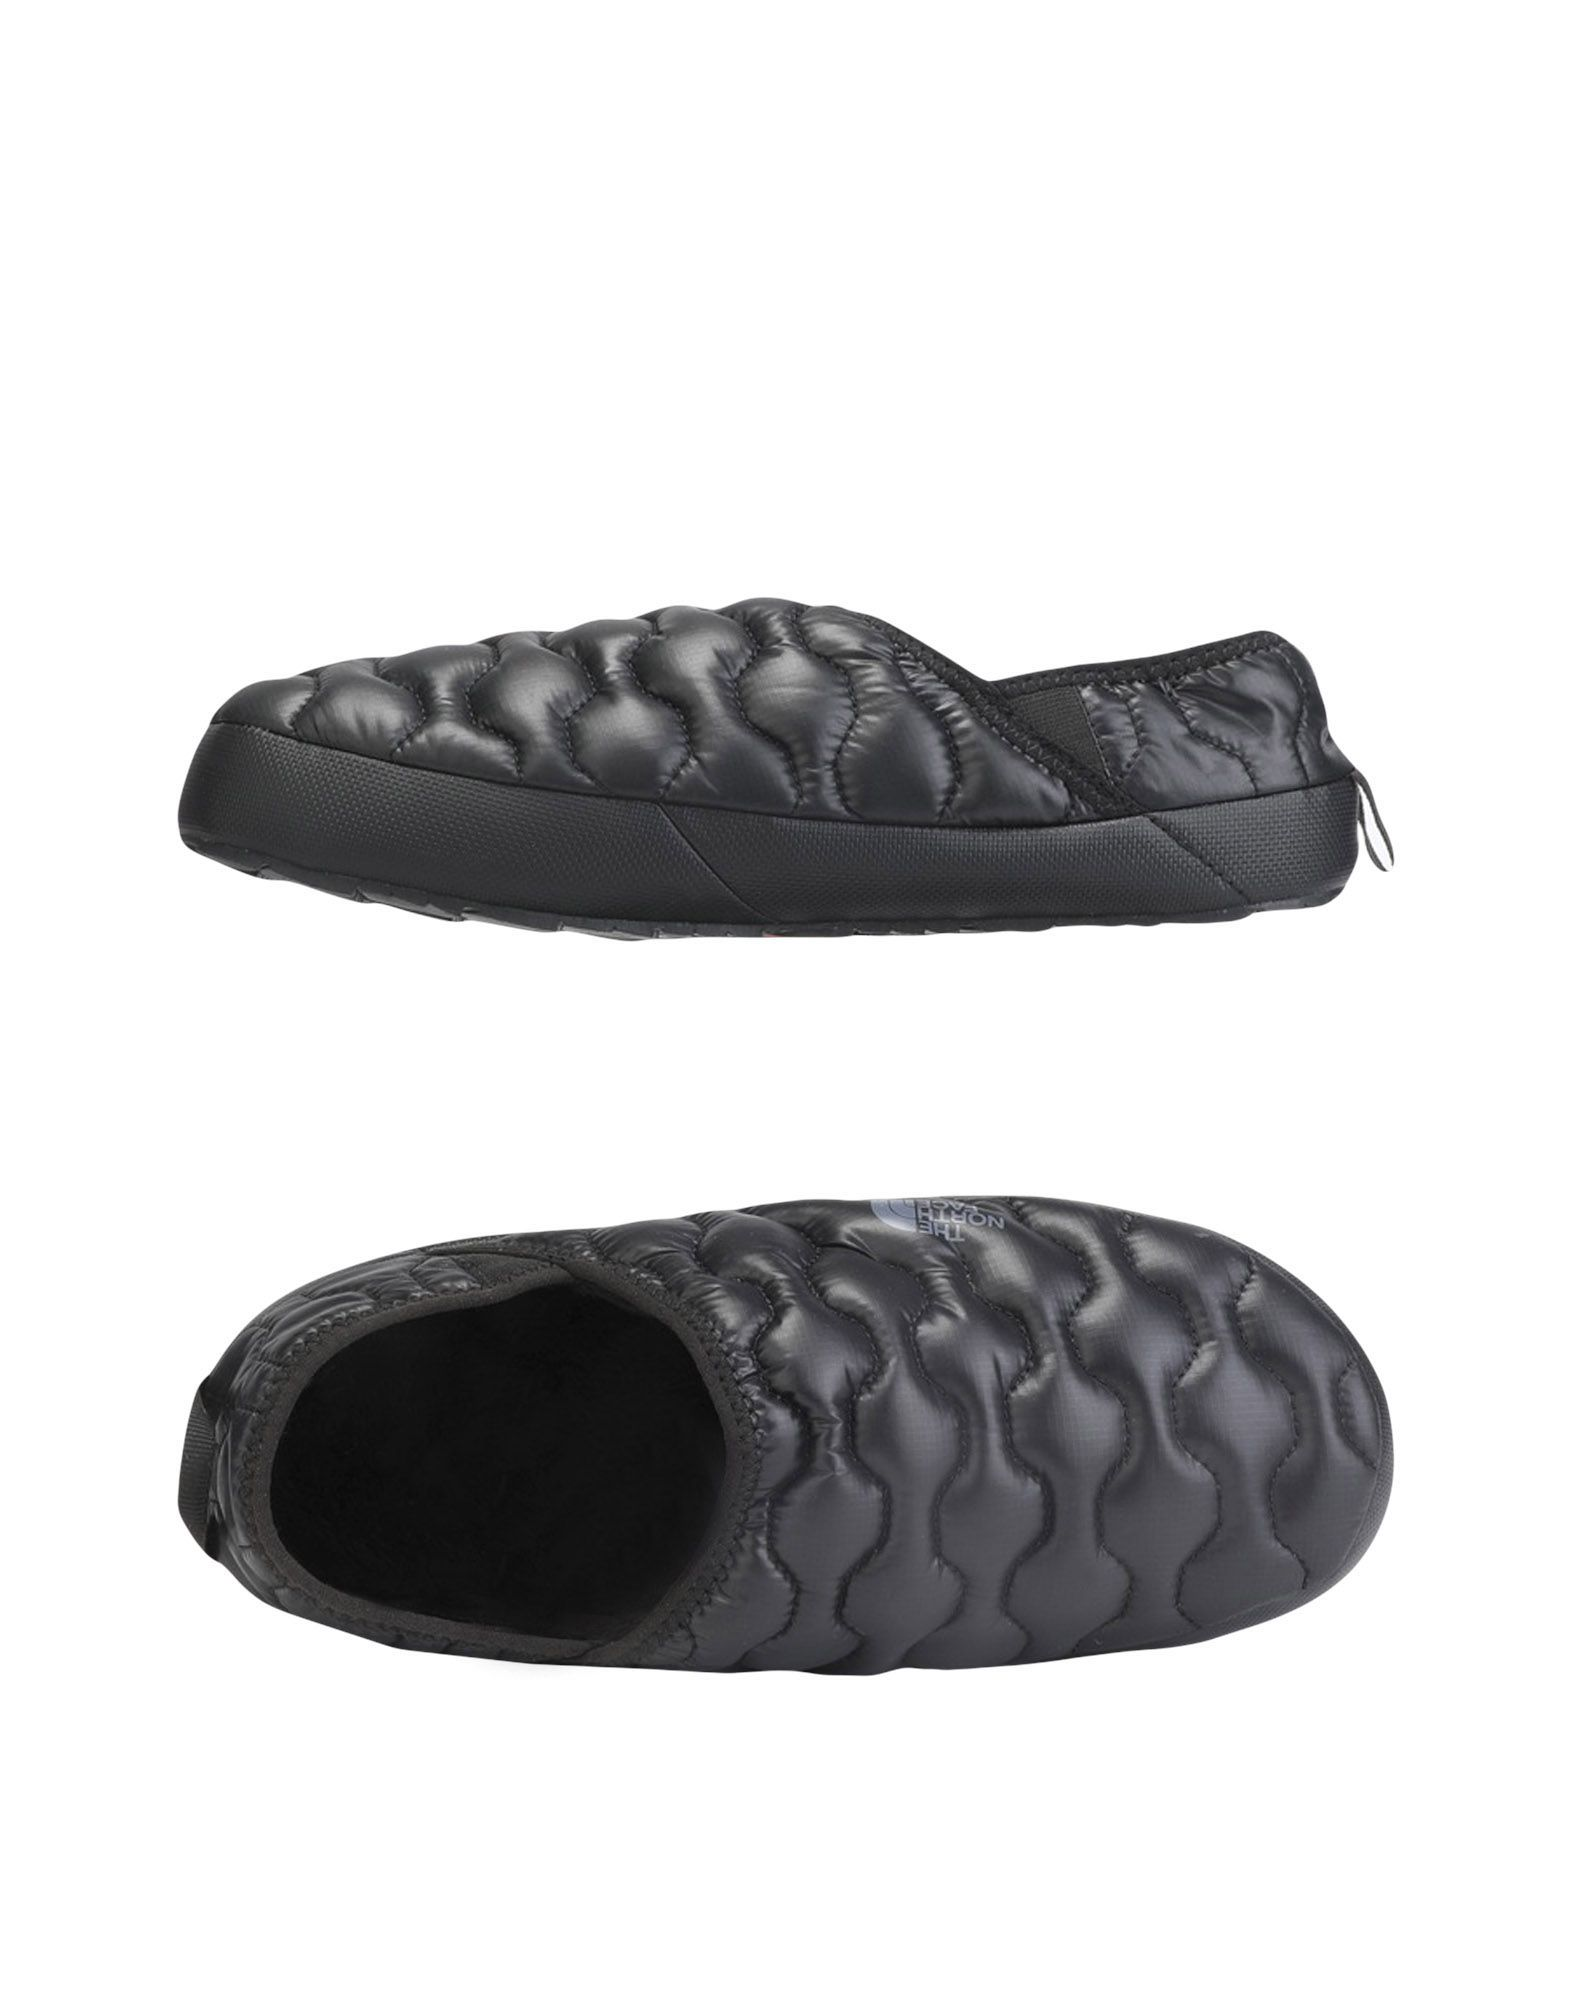 Chaussons The North Face M Tb Traction Mule - Homme - Chaussons The North Face sur